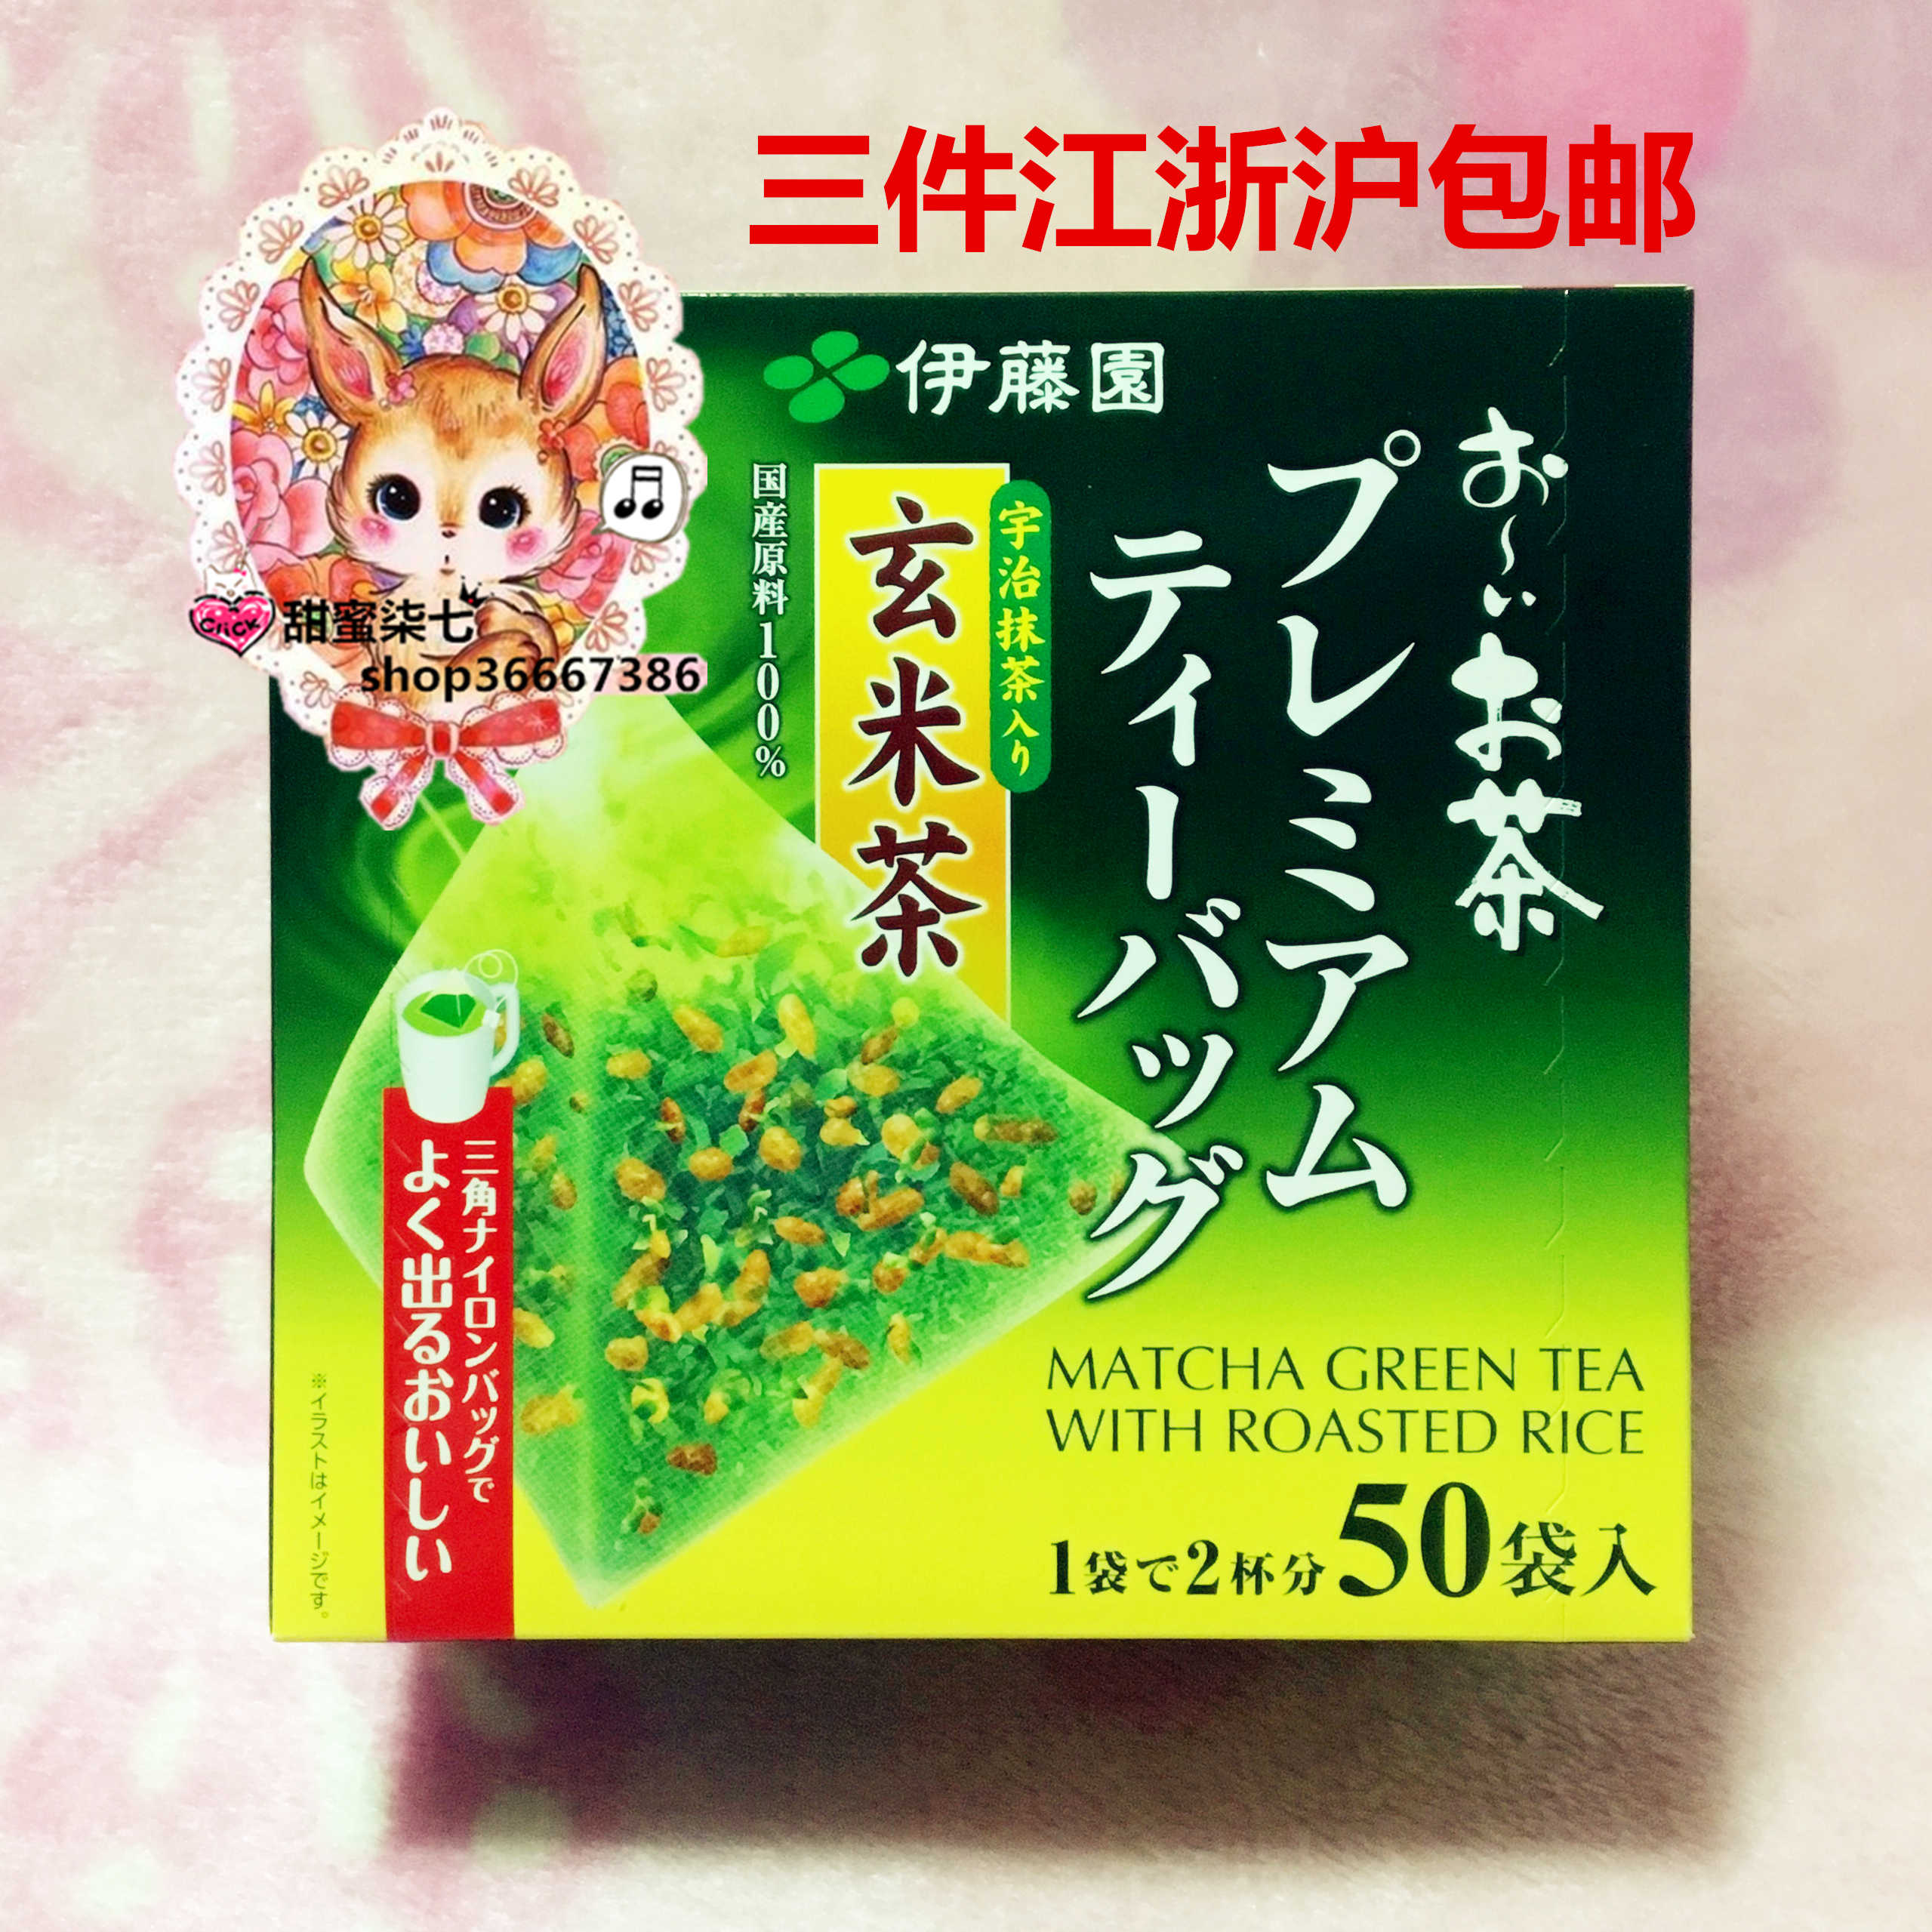 [Spot] Japan purchases 50 bags of Ito Yuzhi wipe tea into Xuanmi green tea triangular bag